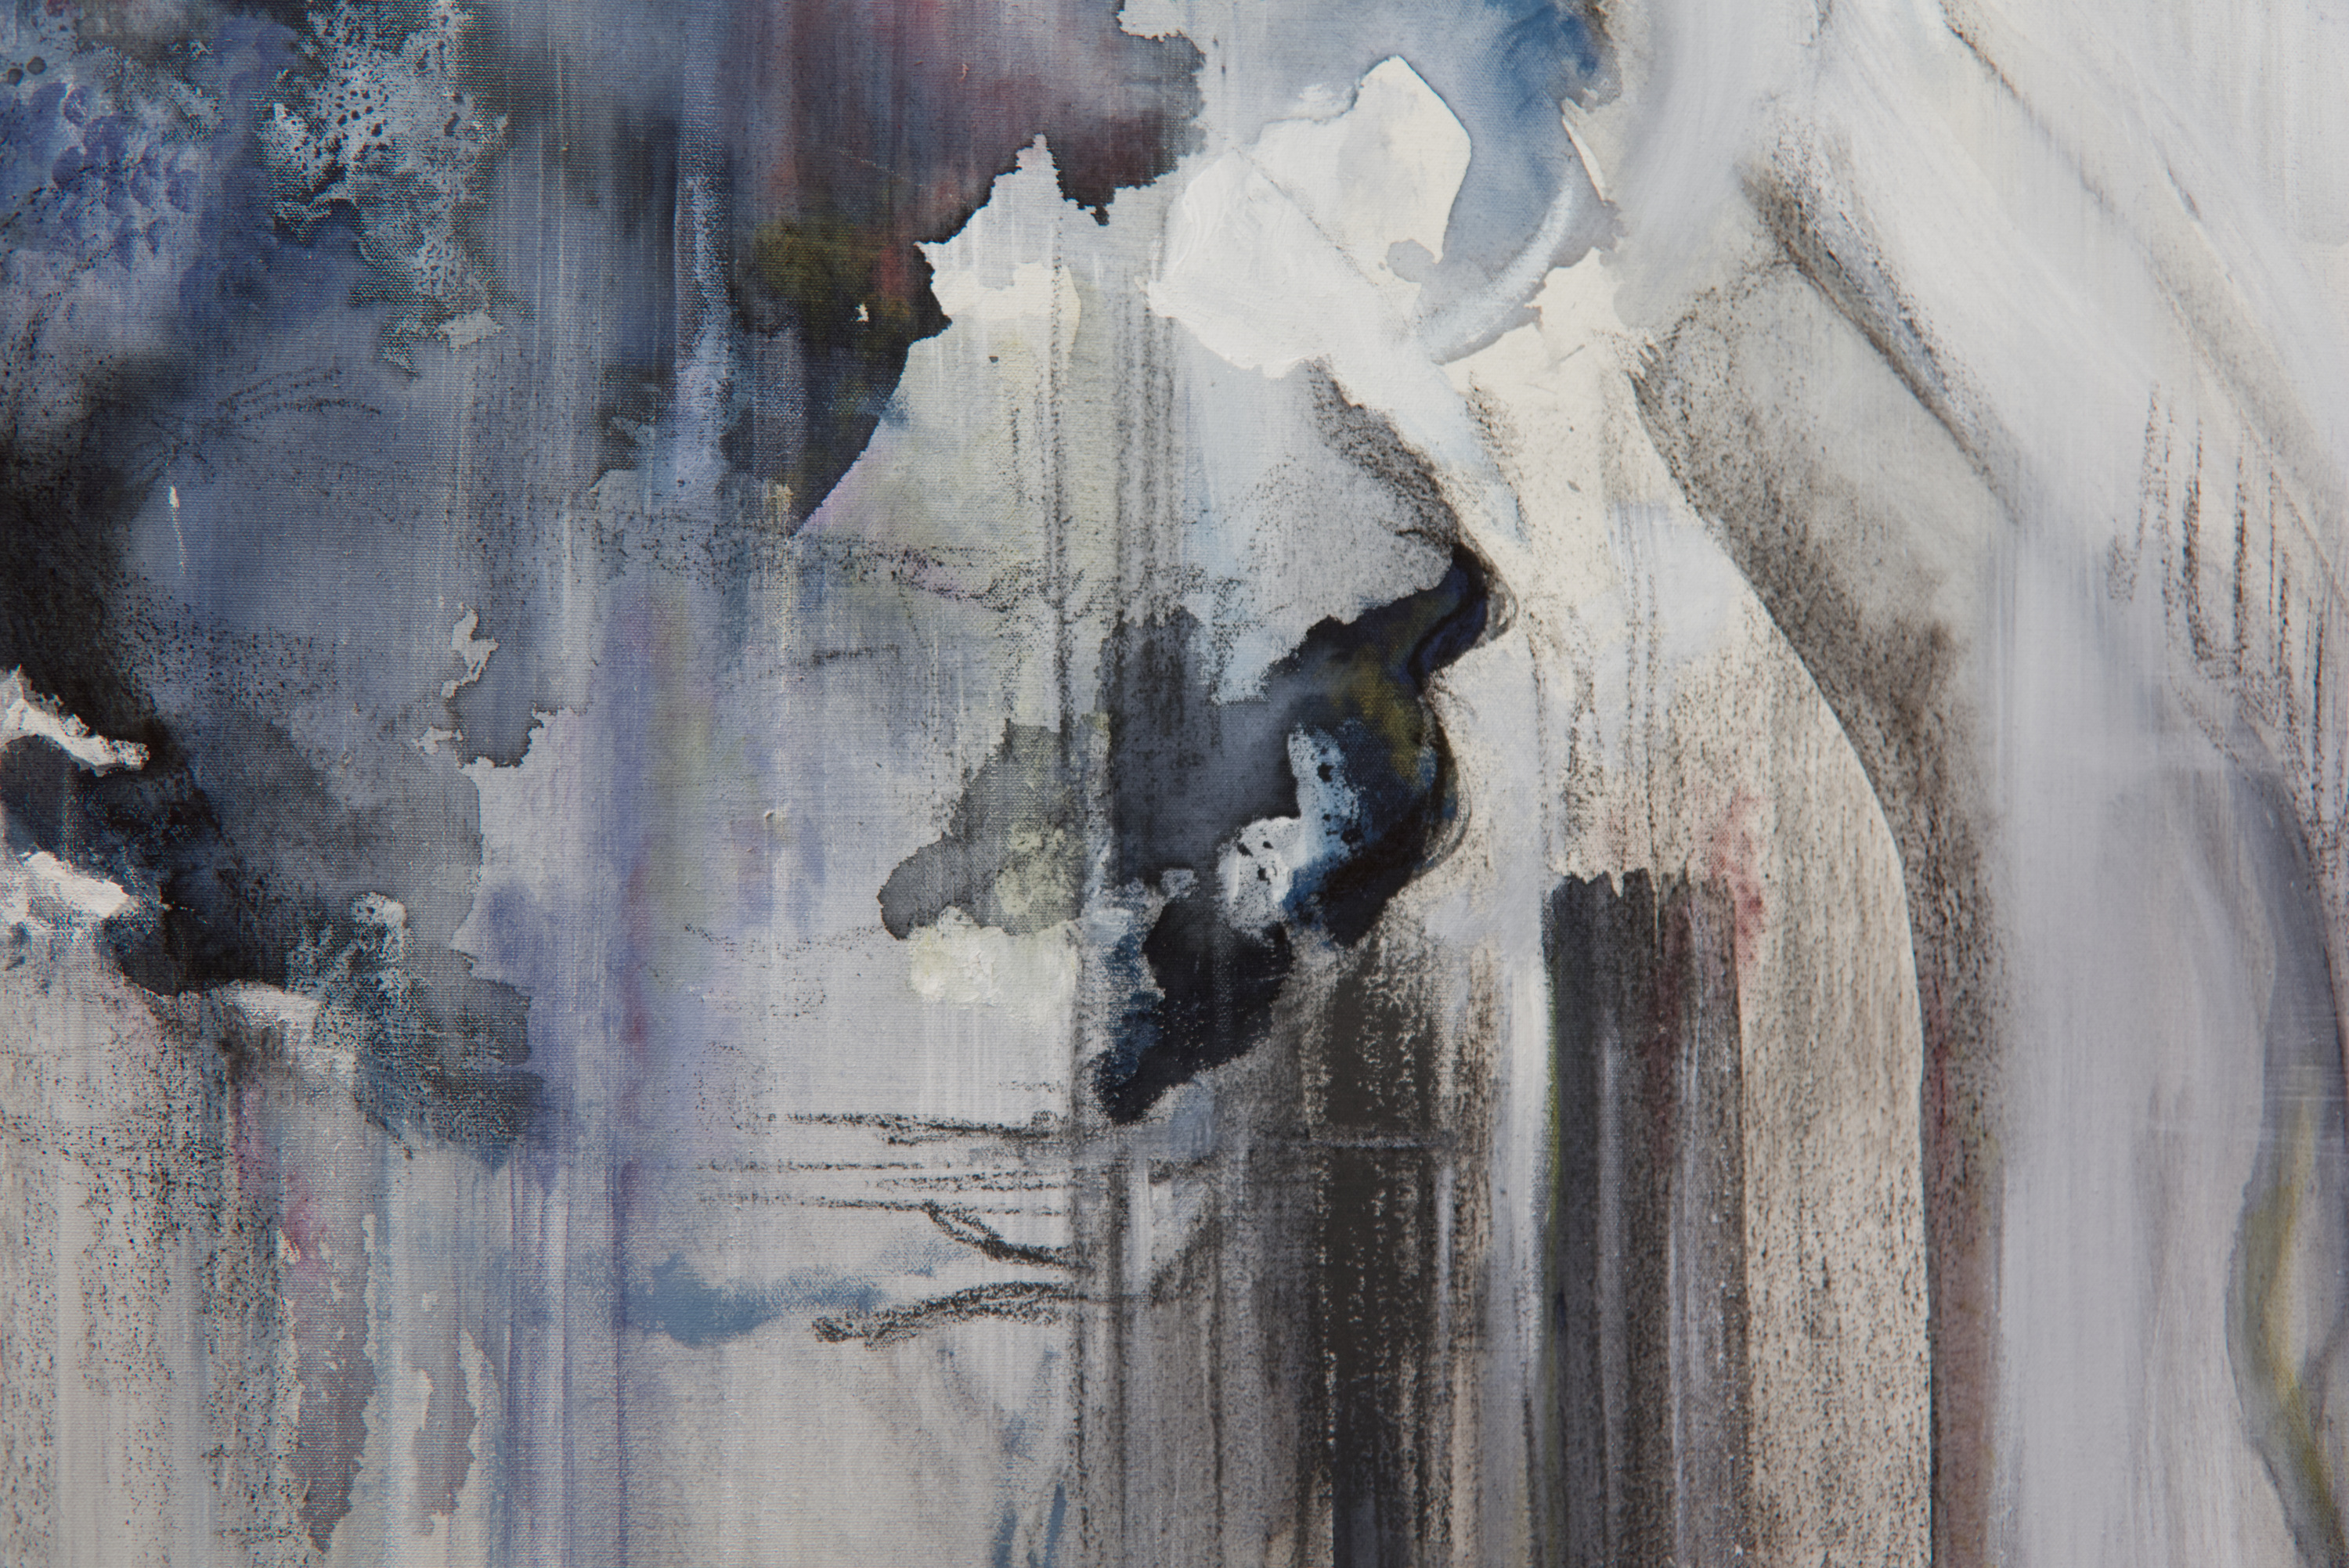 A detail of a larger painting. Pictured is a central section, the vertical brushstrokes are visible in the bottom right corner and a globular form appears in the top left corner. There are details of charcoal, ink and paint.